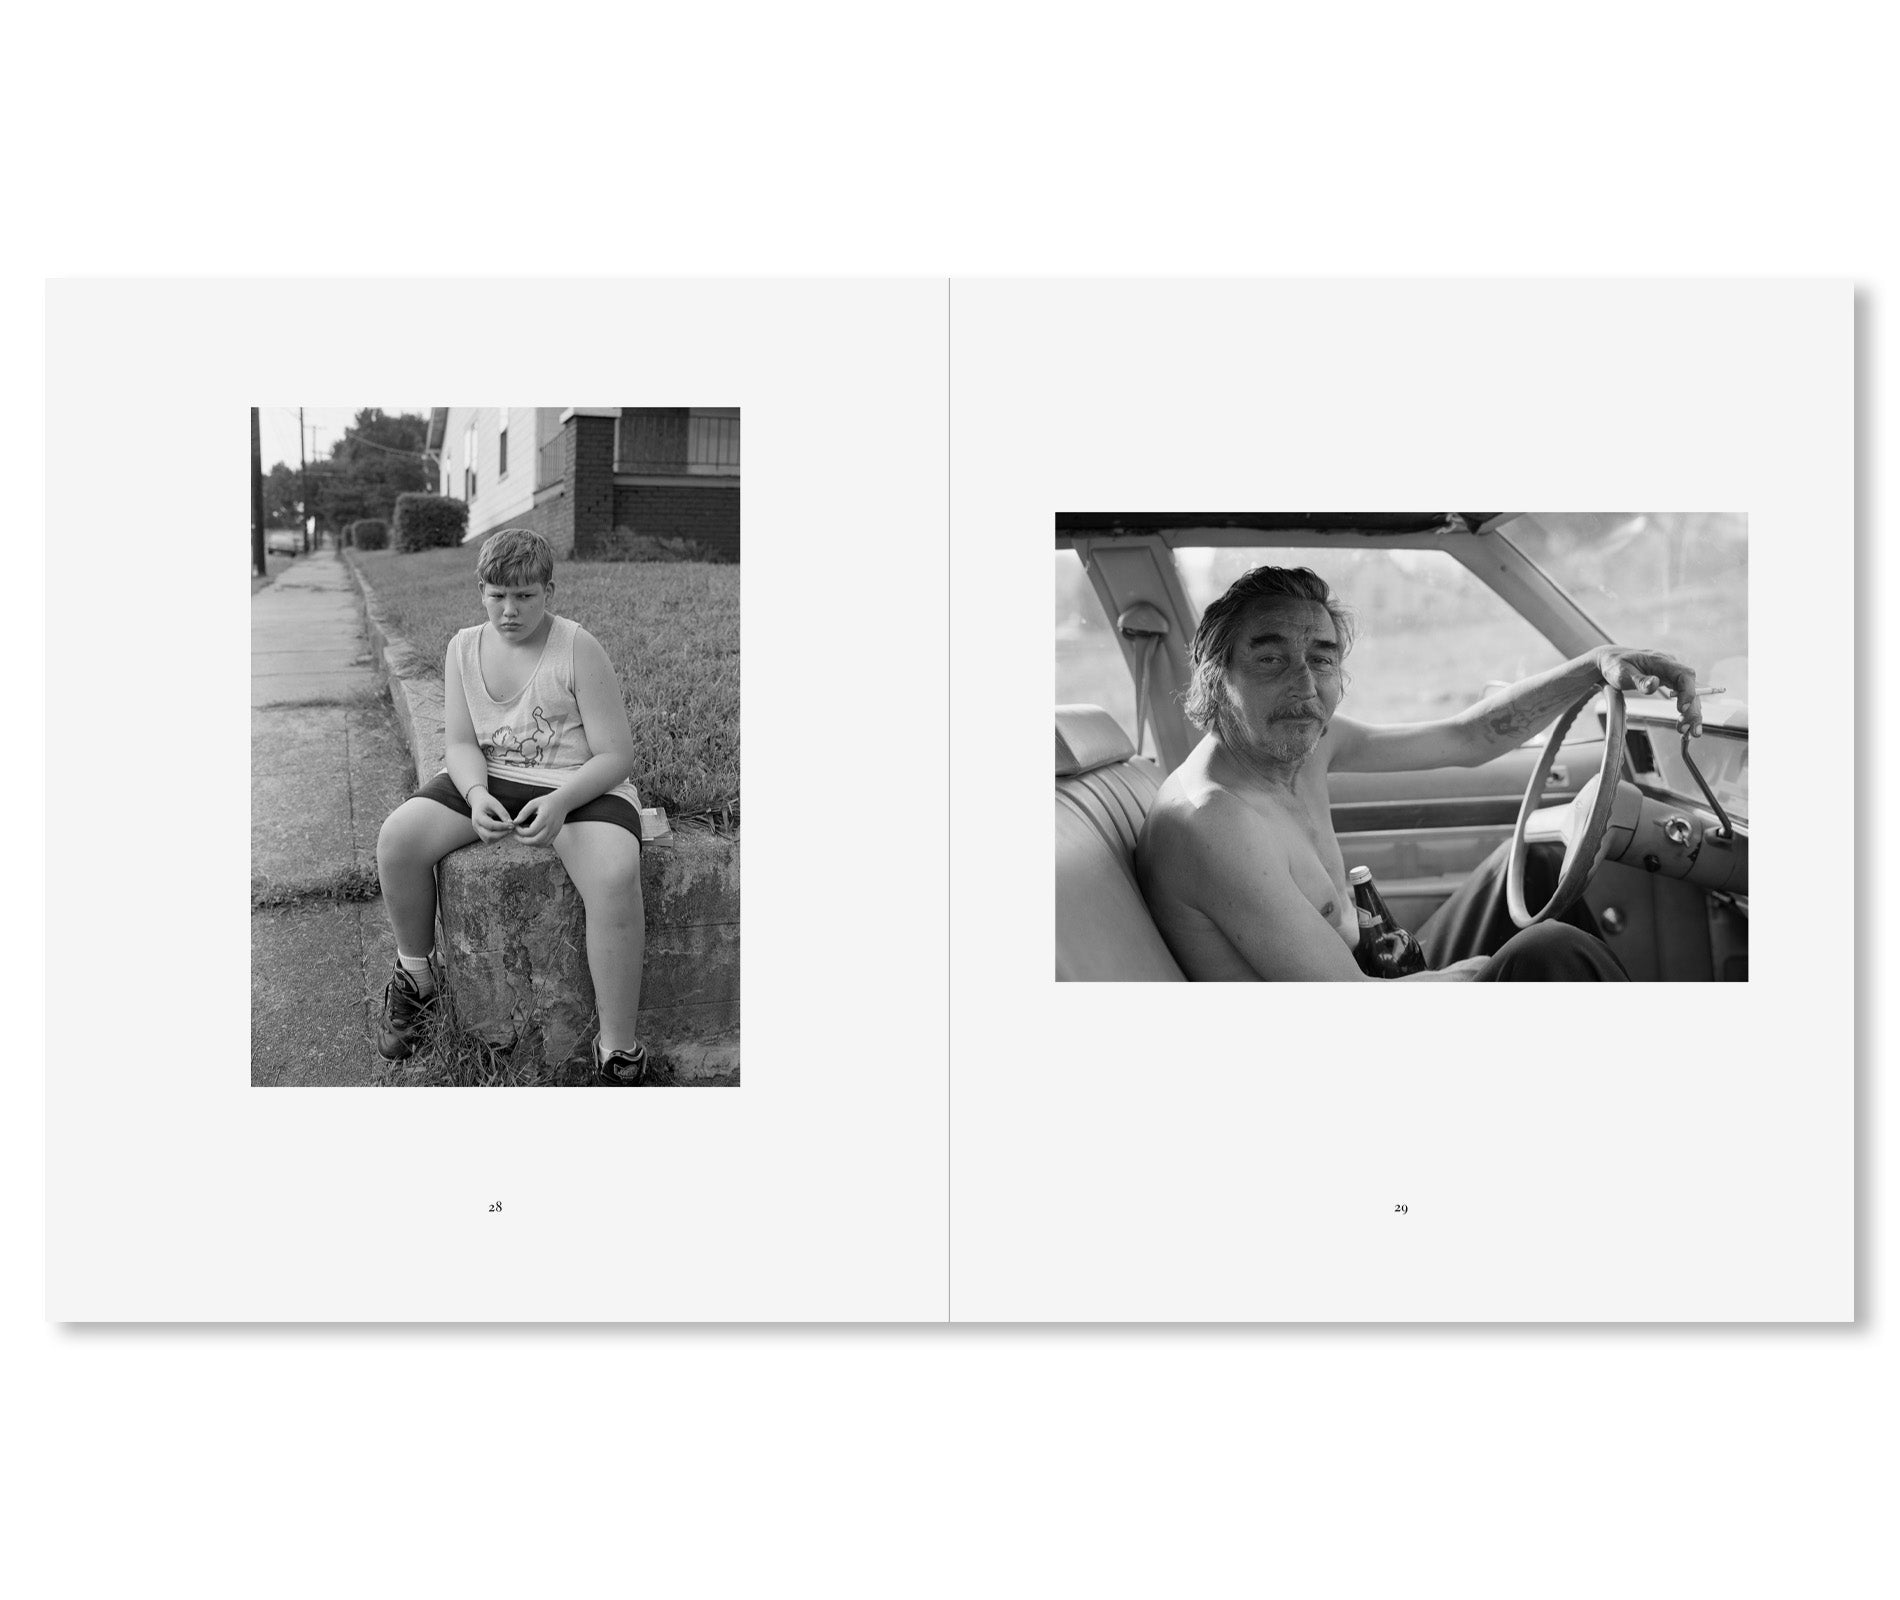 SOUTH CENTRAL by Mark Steinmetz